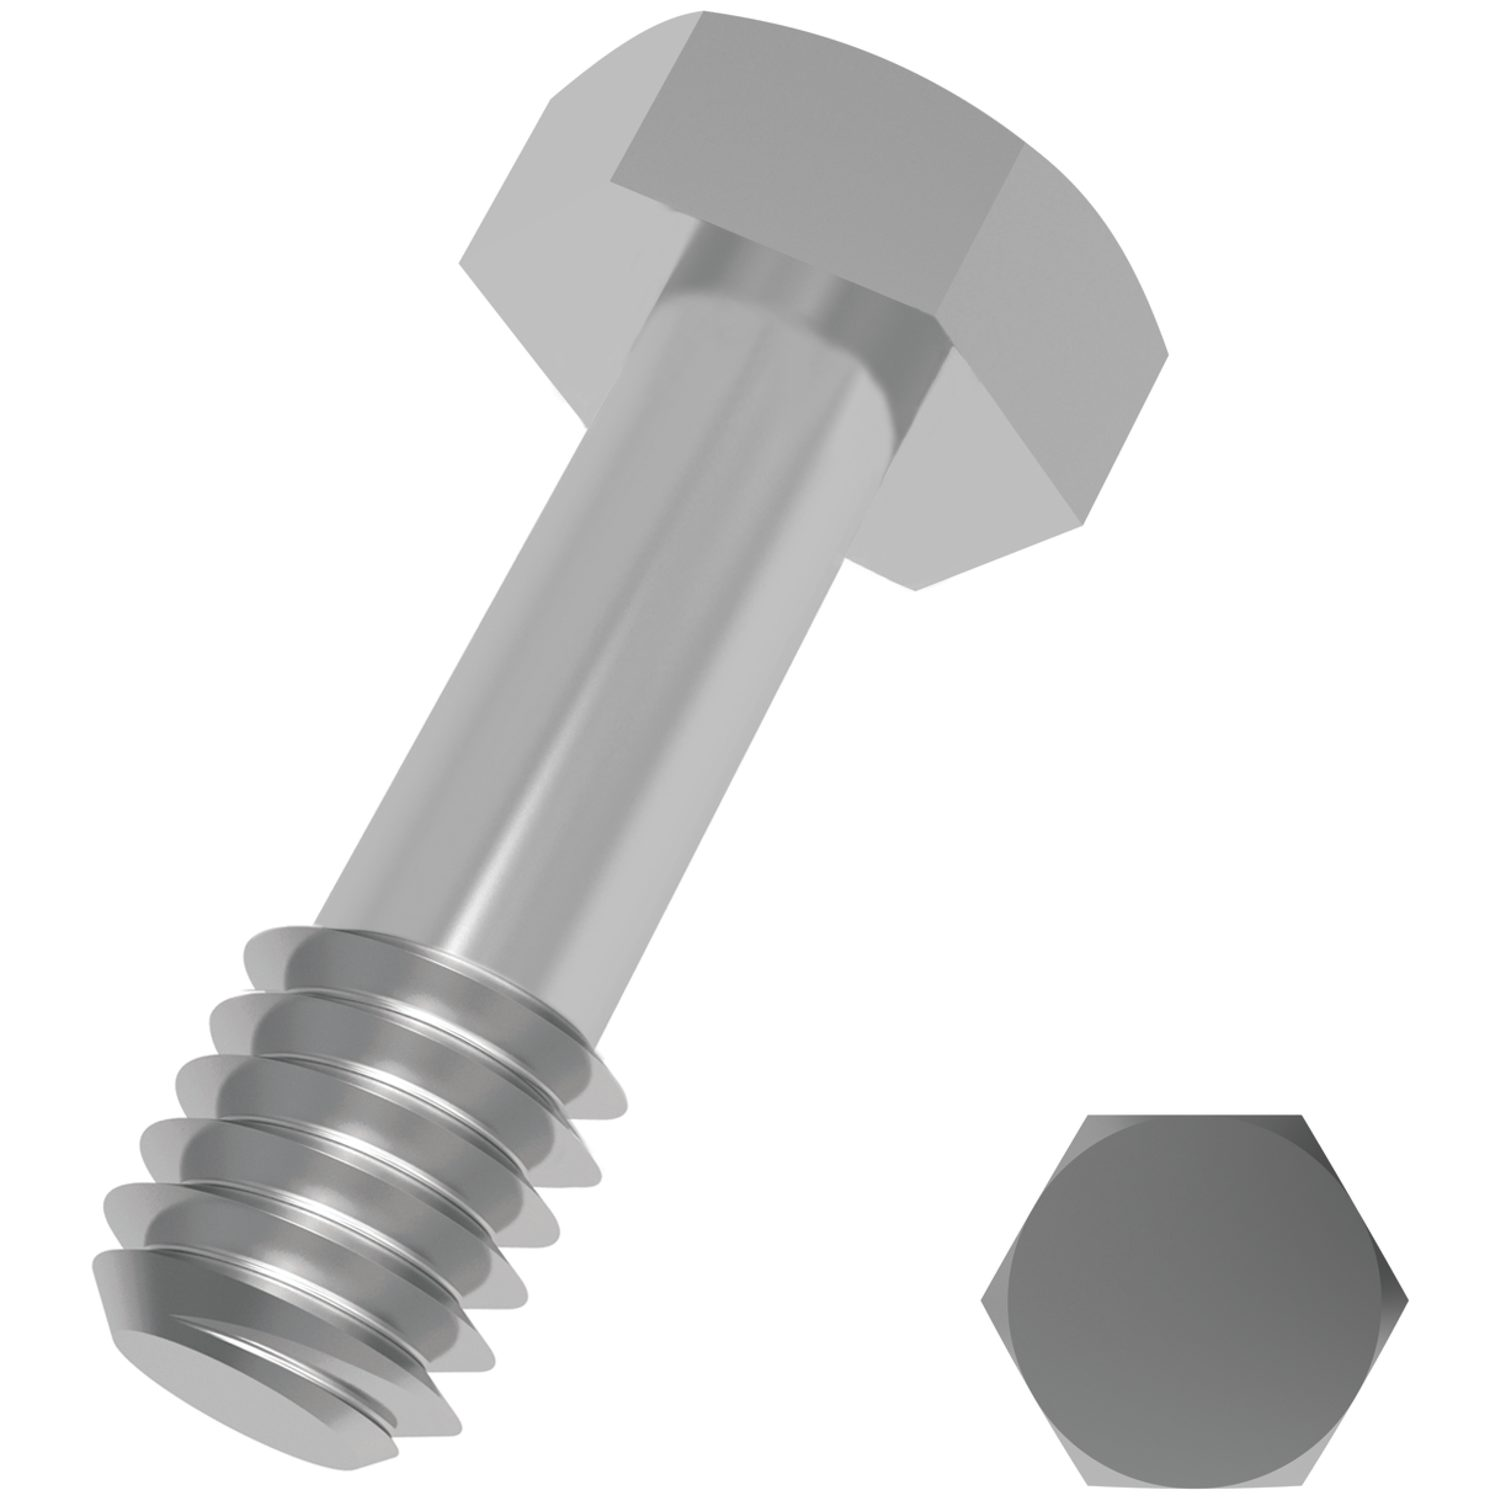 Captive Hex Bolts A2 stainless Our standard range of captive hex bolts/screws with threads sizes M3 to M12 - and a large number of lengths up to 80mm to suit customer applications